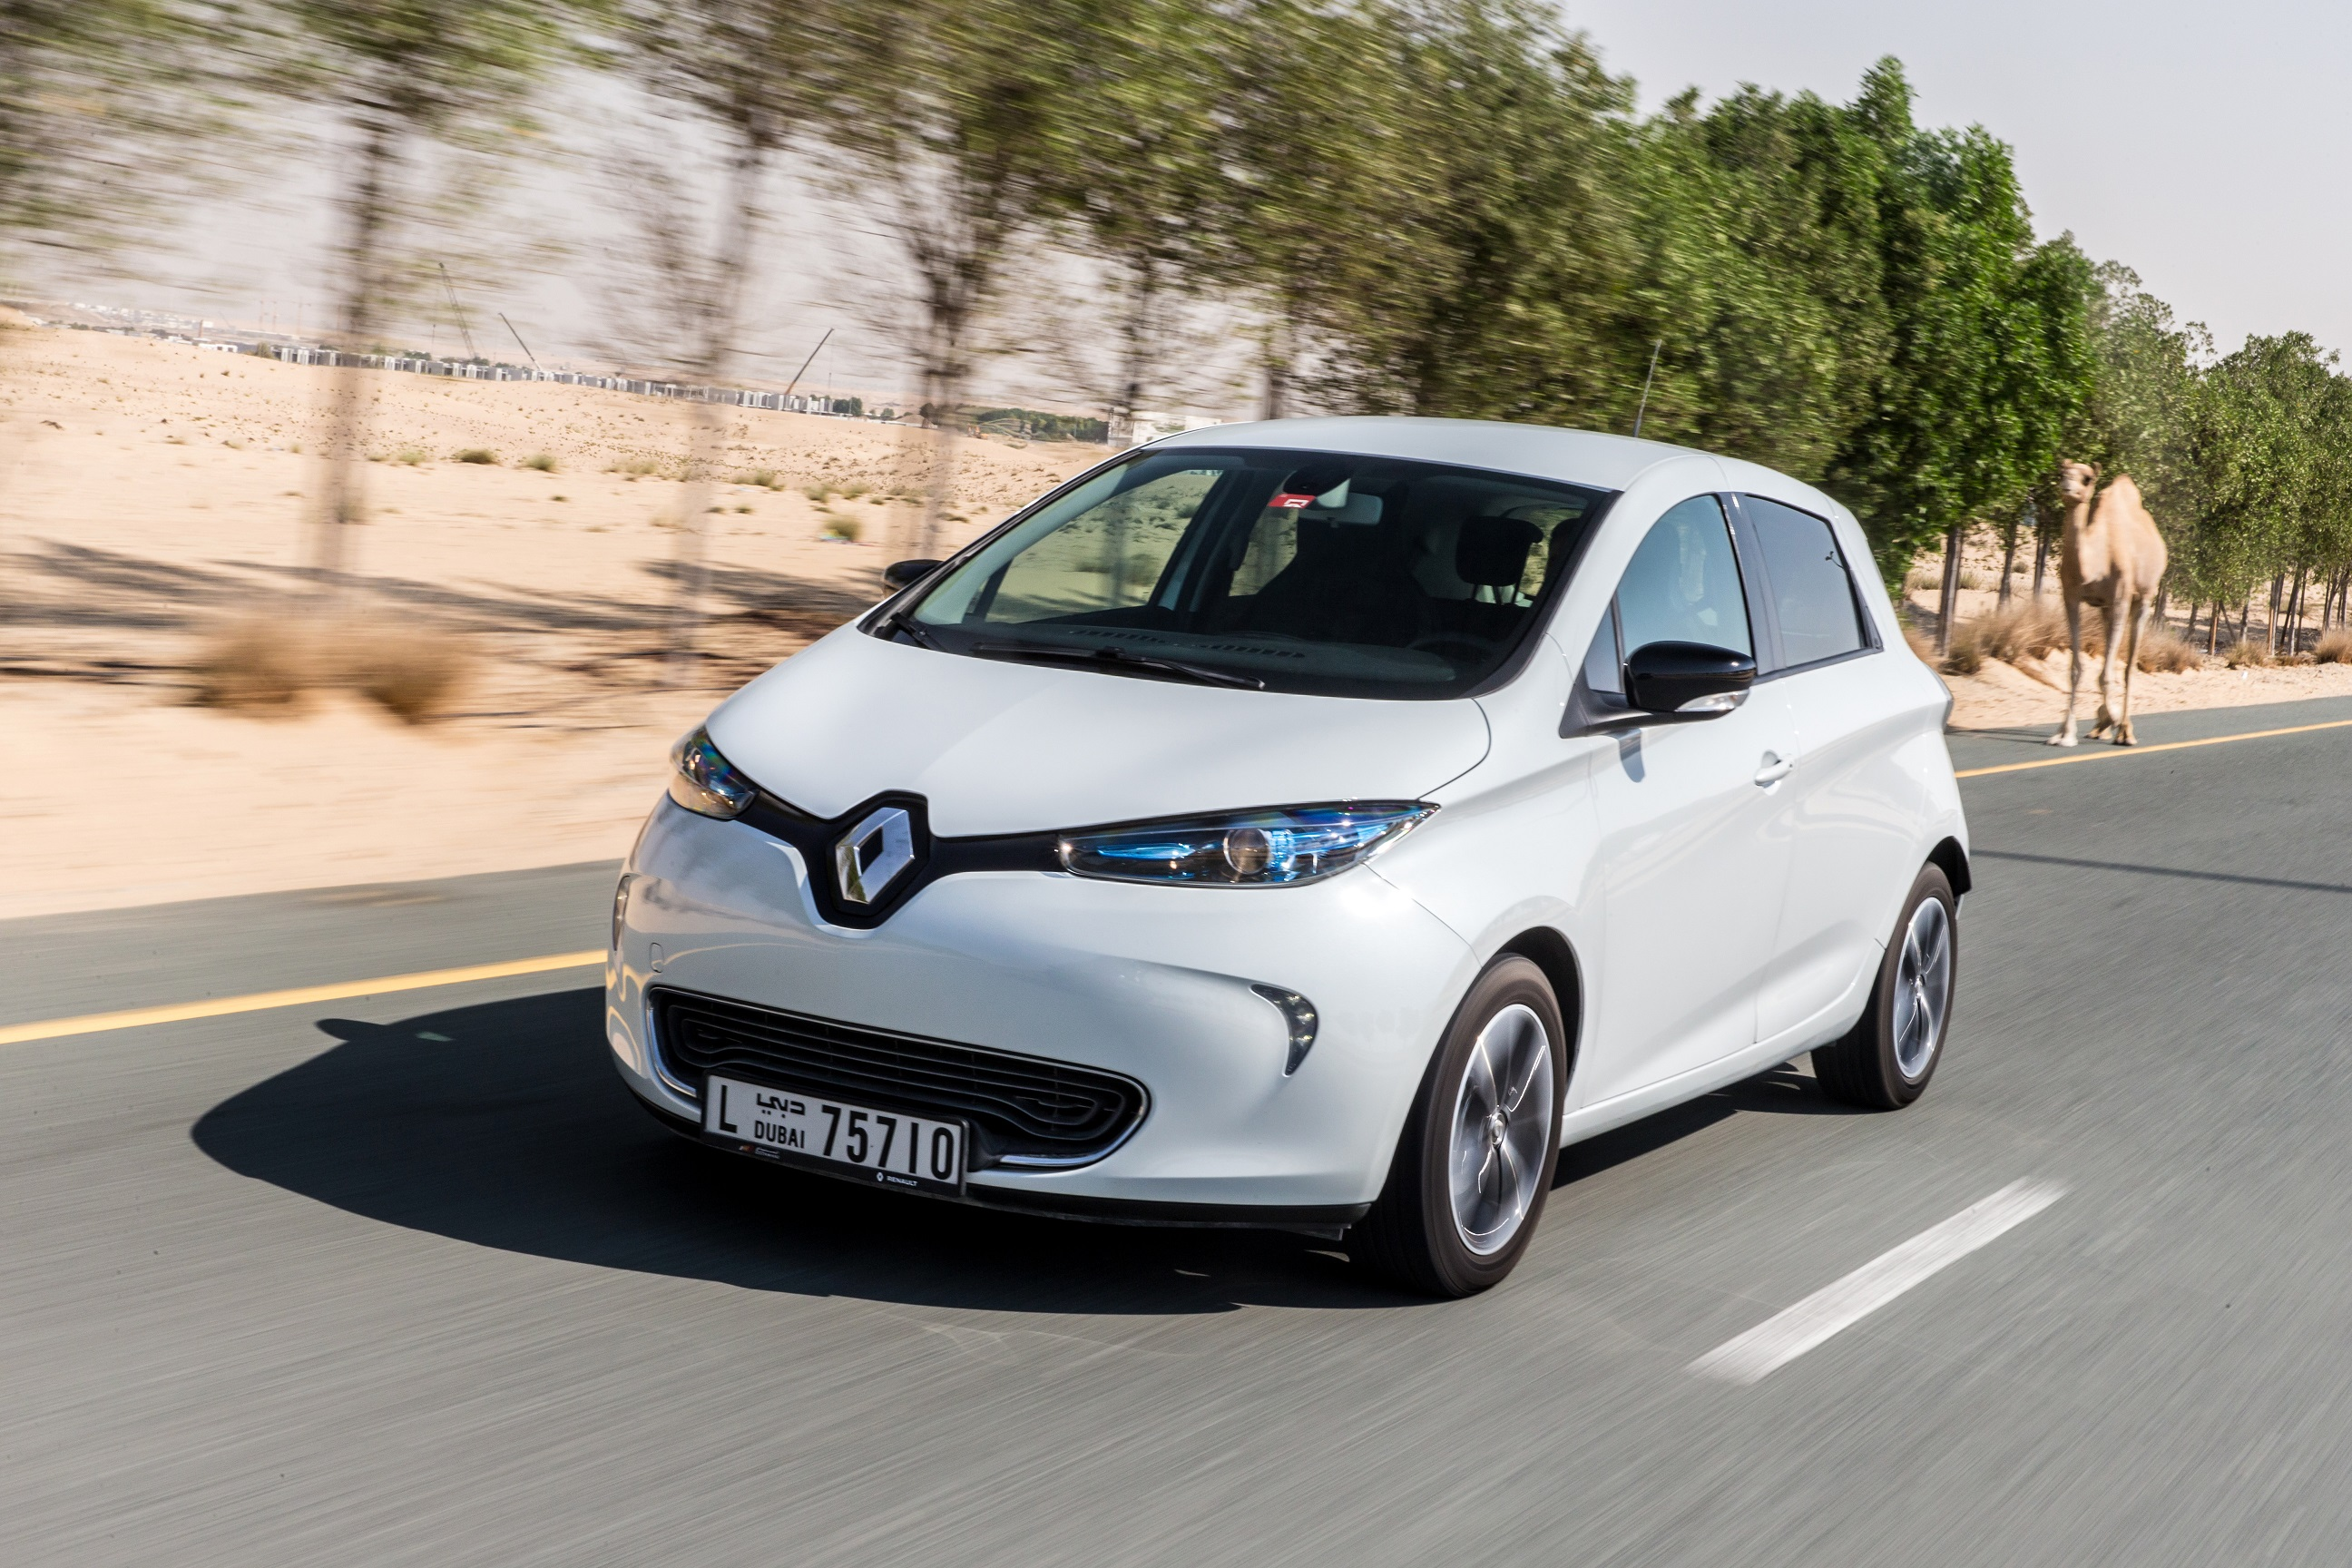 Renault Middle East Promotes Electrified Models with Promotional Renault ZOE lease offer